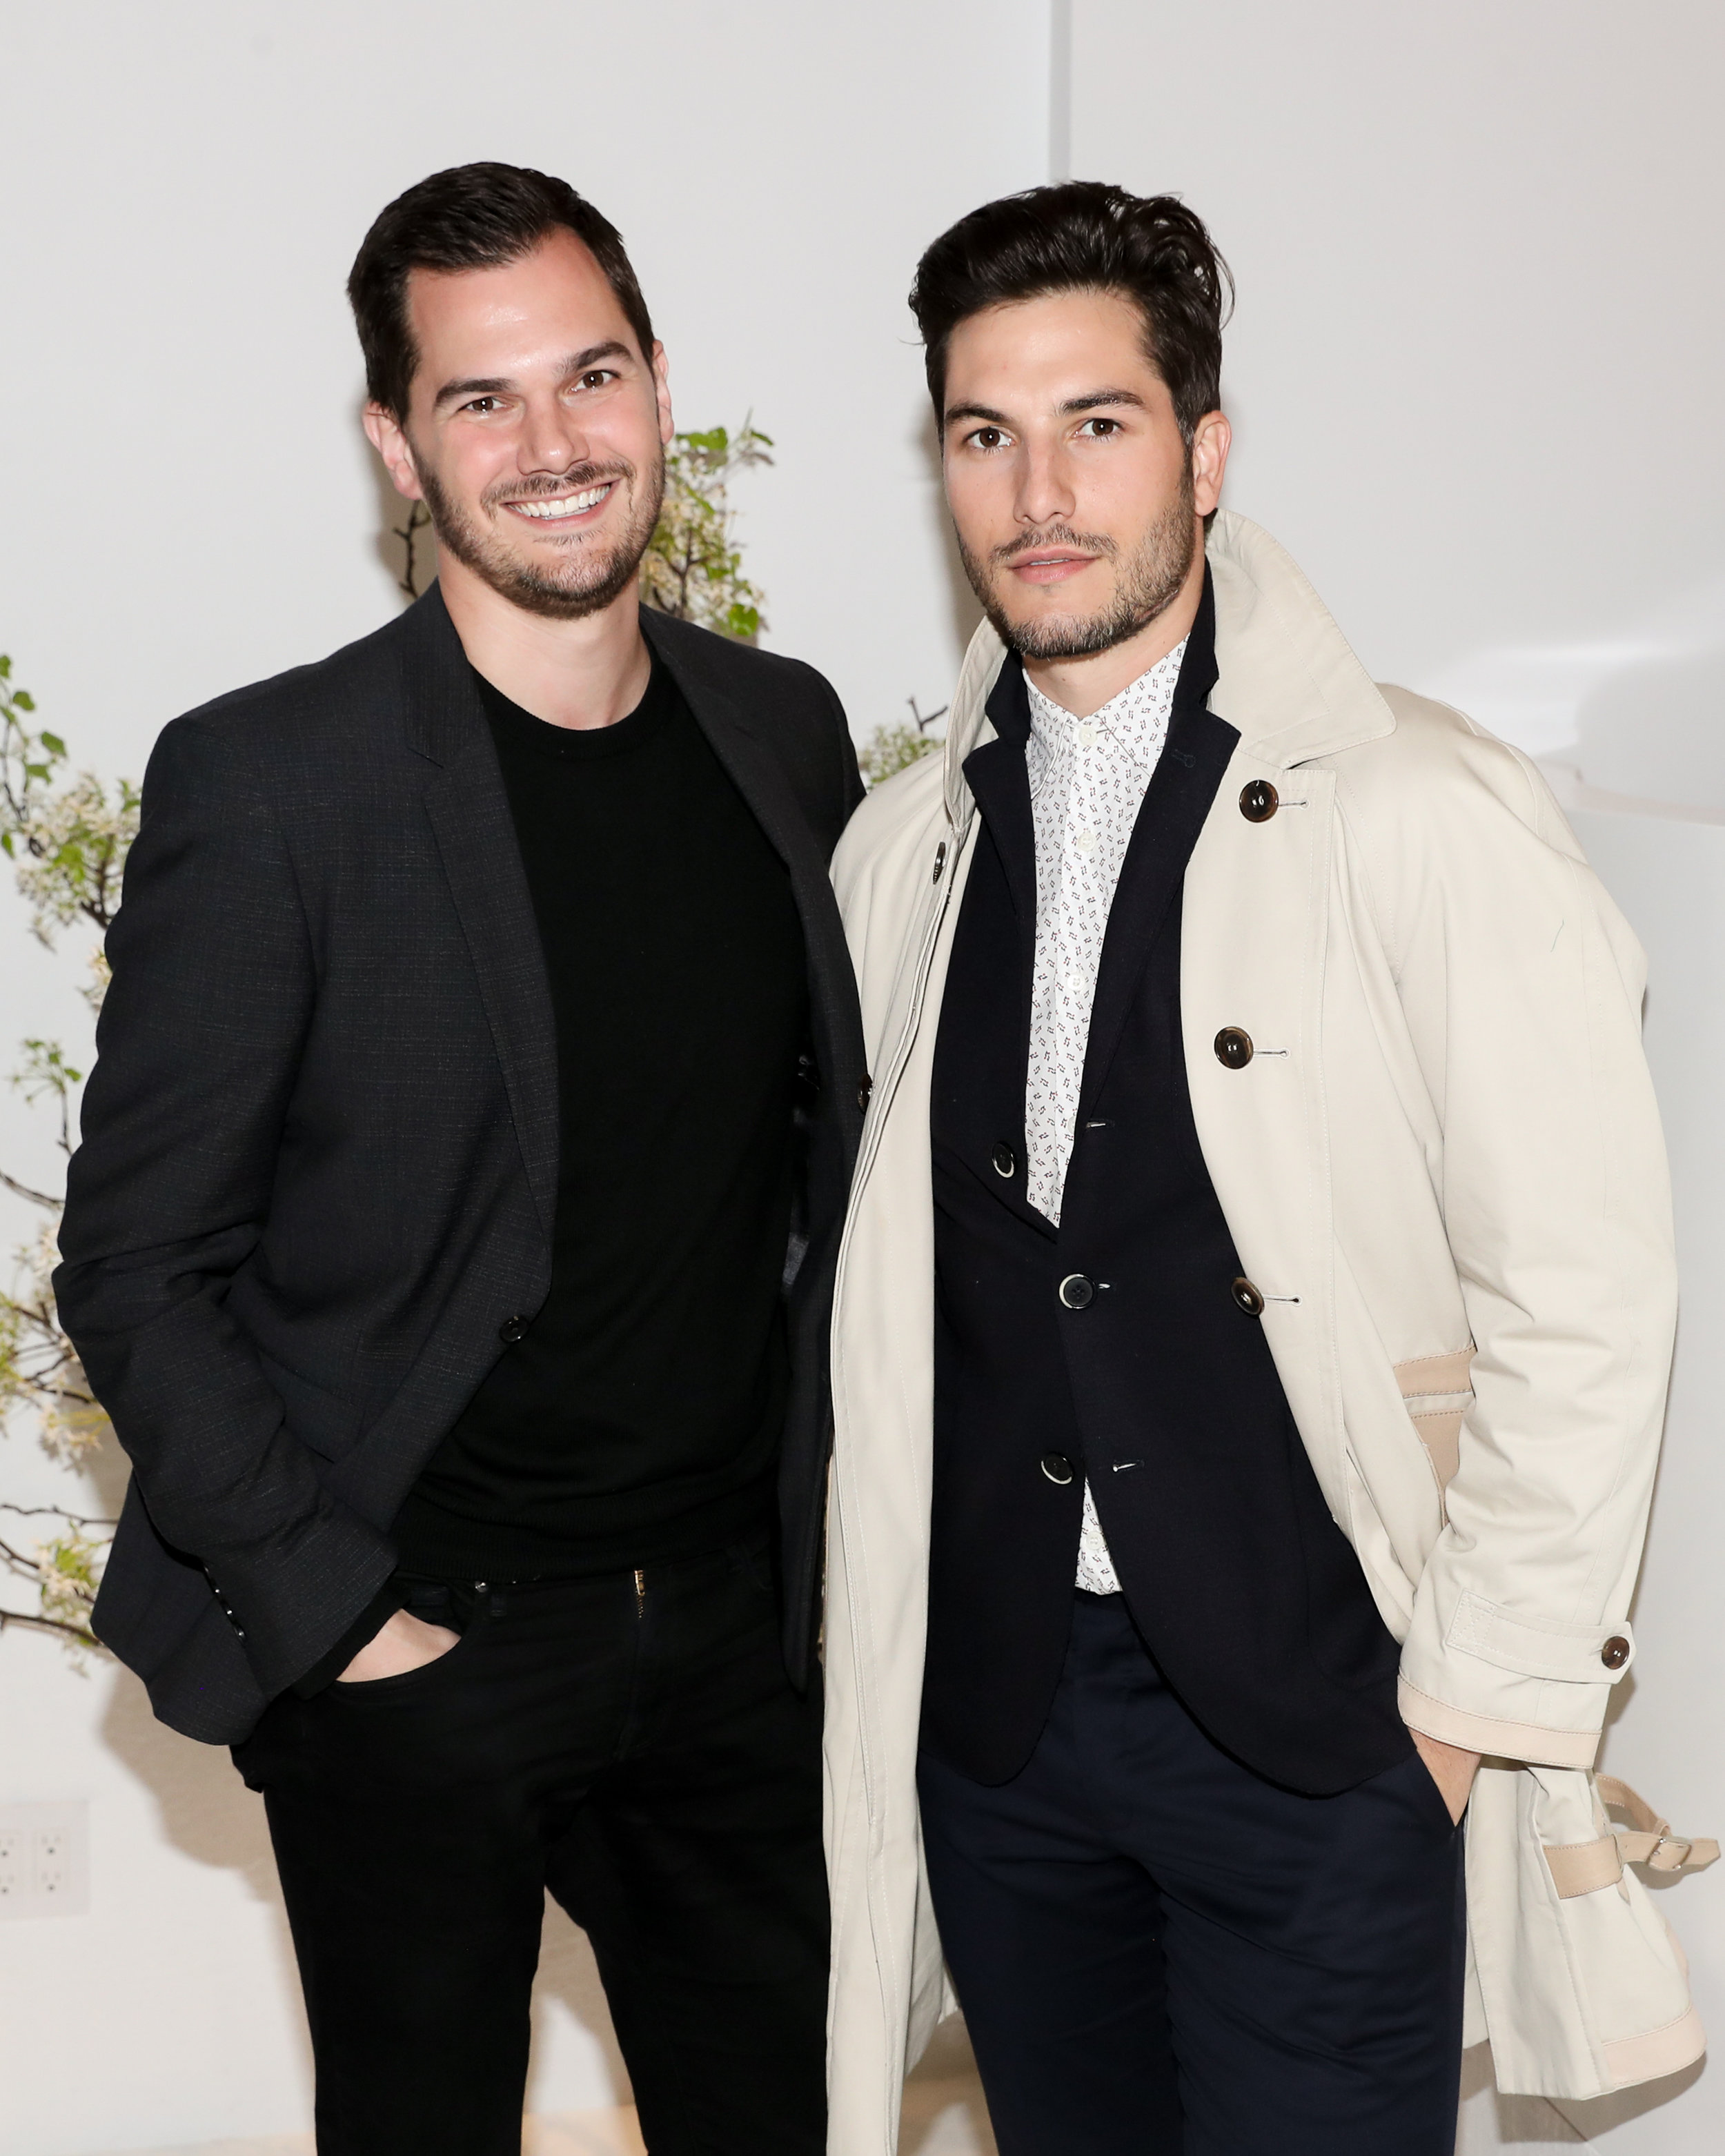 From Left To Right: Lyle Moltz and Sam Dumas attend The Opening of The Dr. Barbara Sturm Zero Bond Boutique & Spa on Thursday, May 2, 2019. Photographed by Neil Rasmus/BFA.